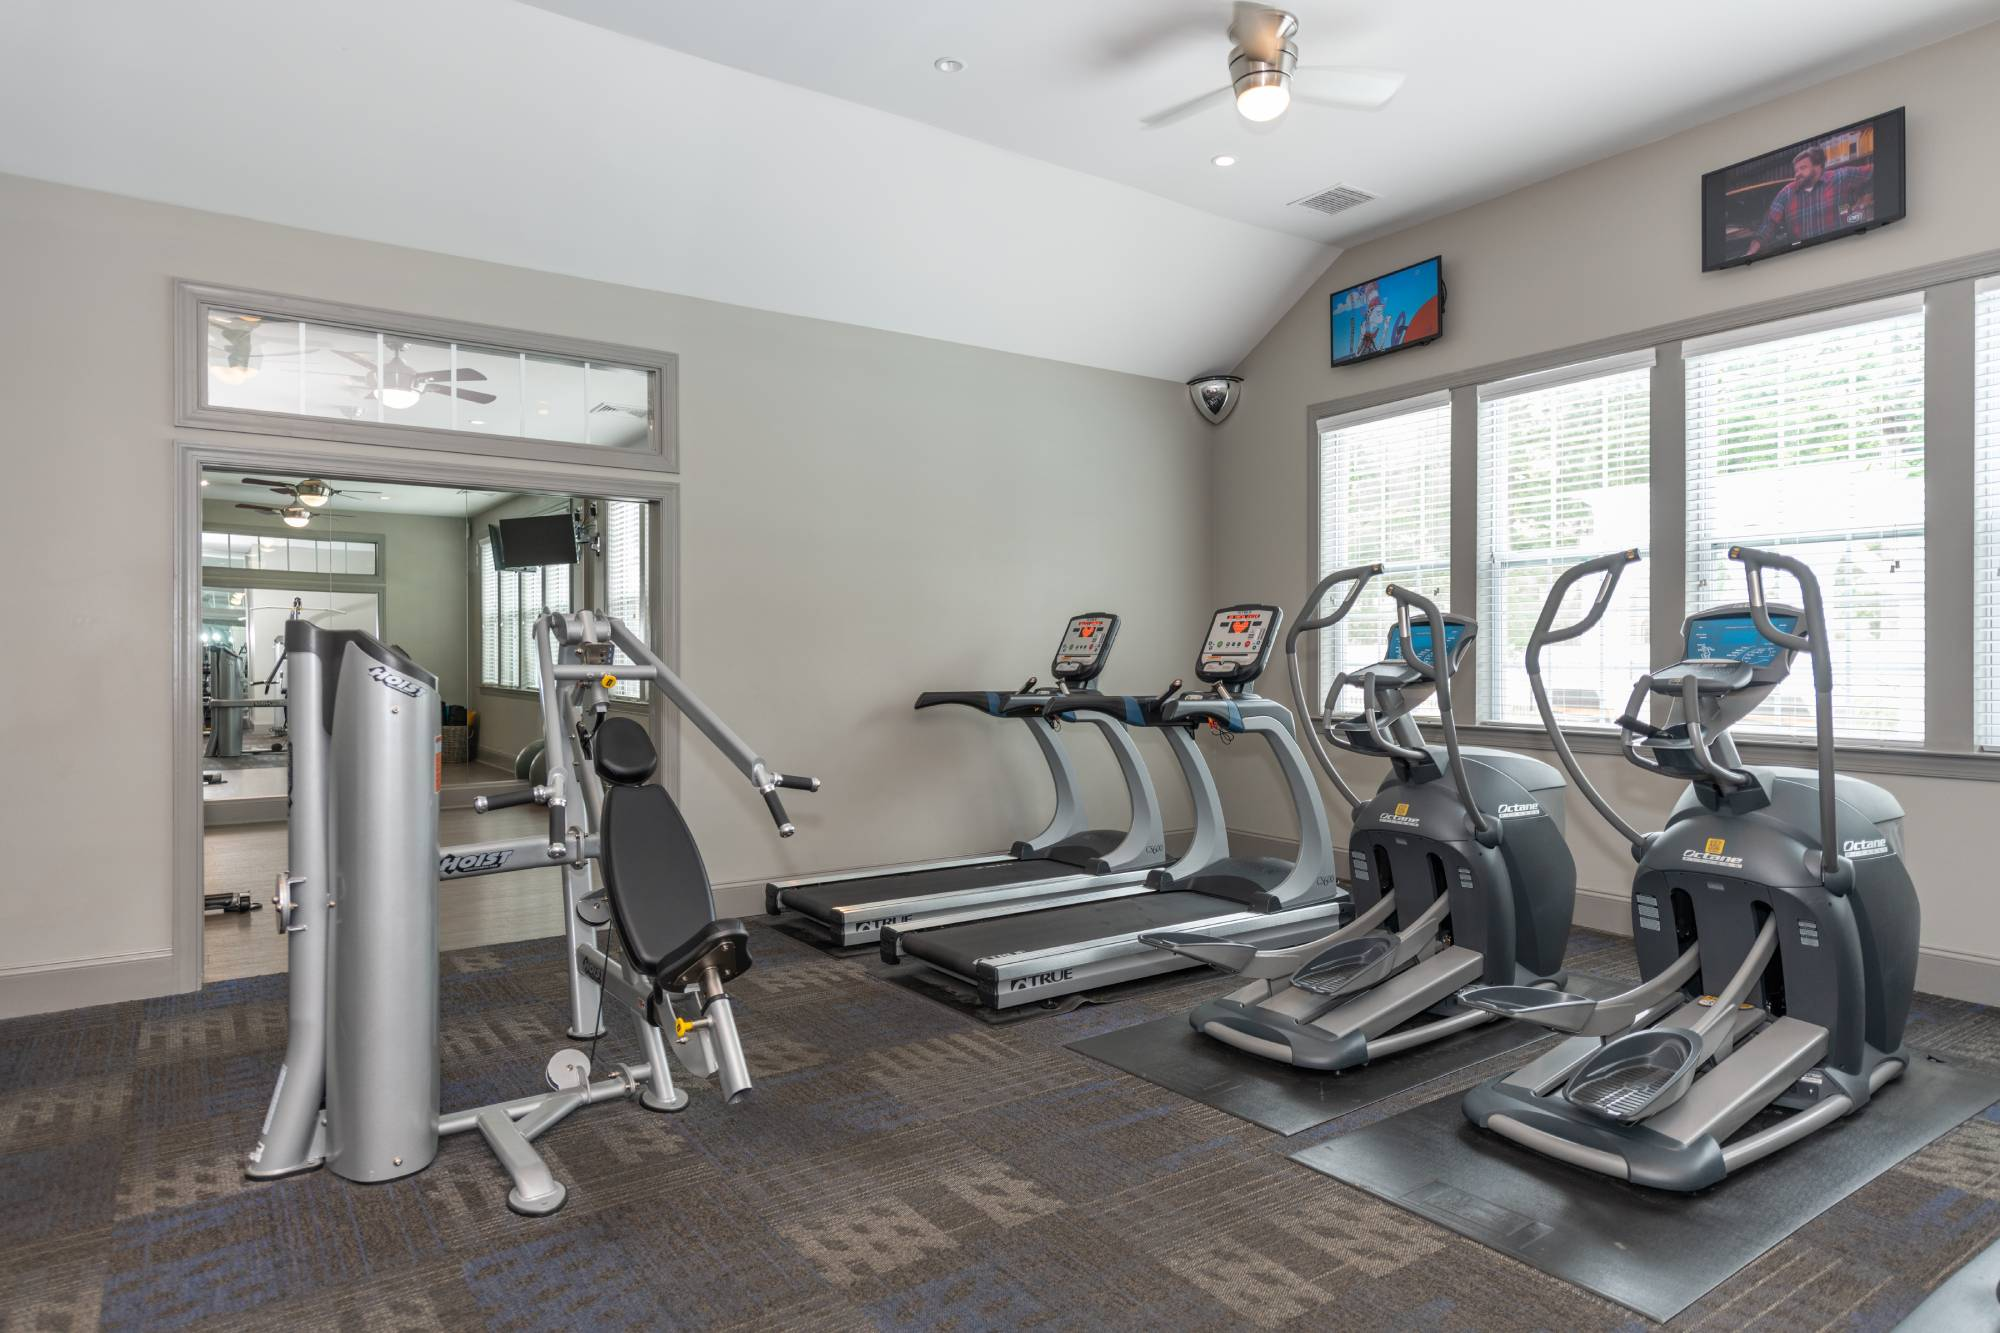 Commonwealth at York fitness center with elliptical machines.